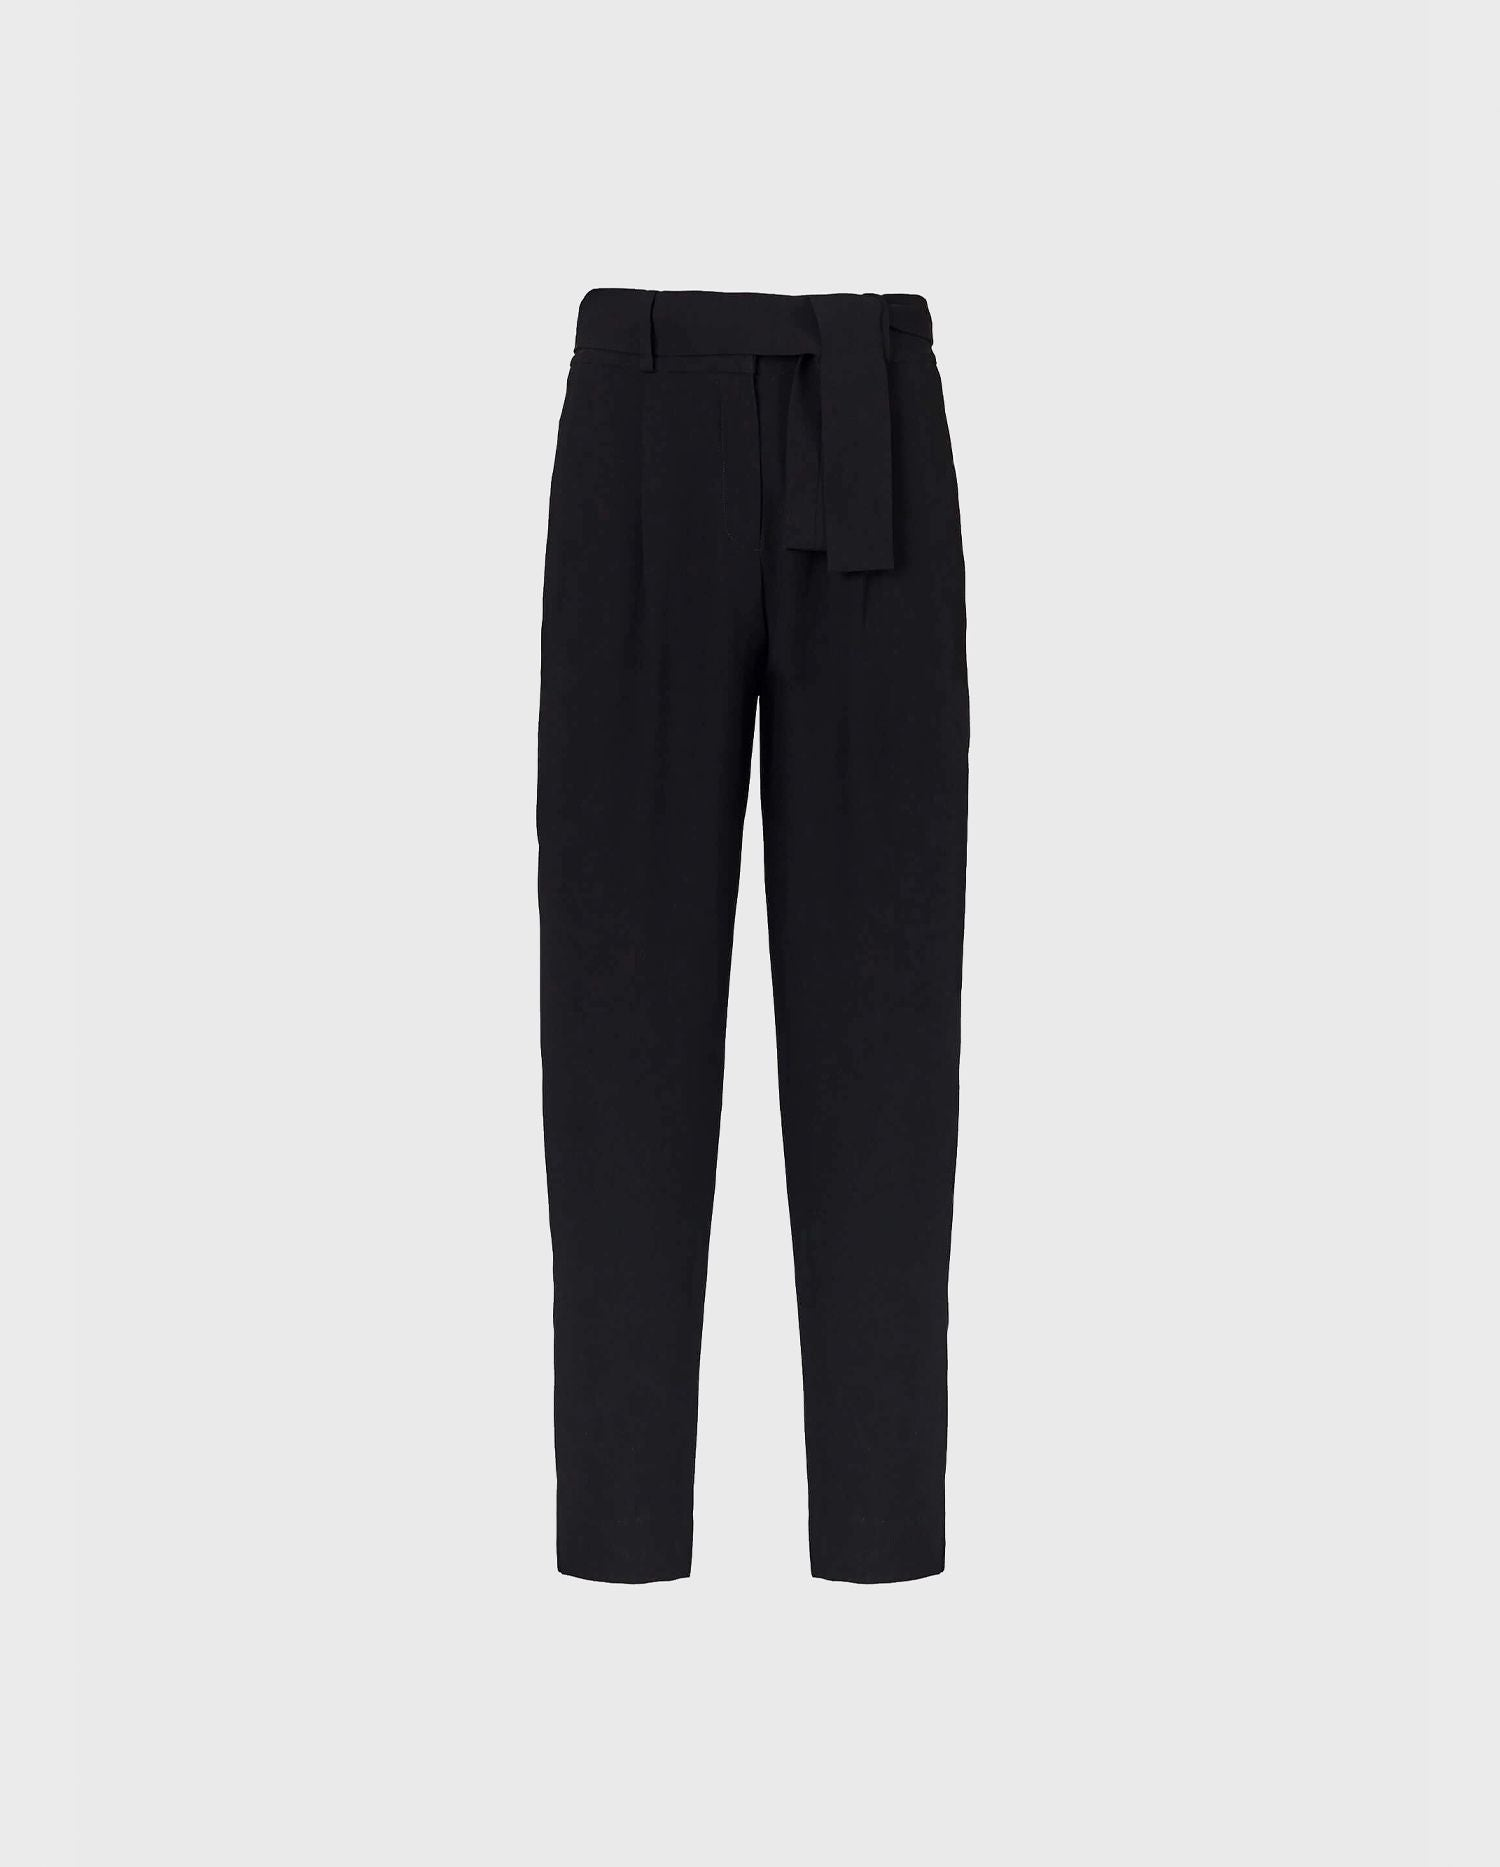 The LESTER black trouser is the perfect pant to add to your wardrobe to build your Parisian chic wardrobe.